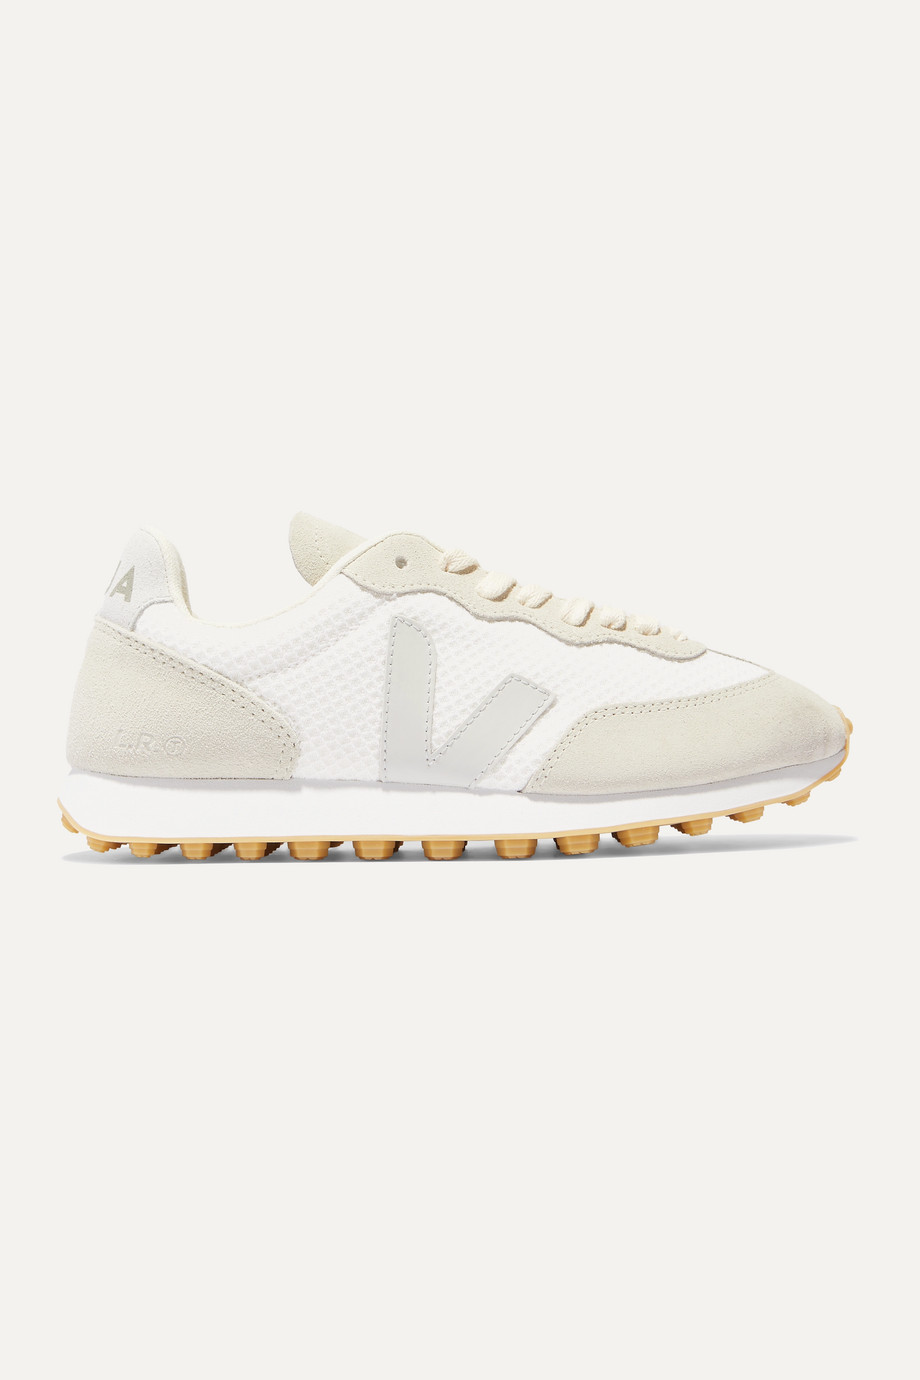 Veja + NET SUSTAIN Rio Branco leather-trimmed mesh and suede sneakers